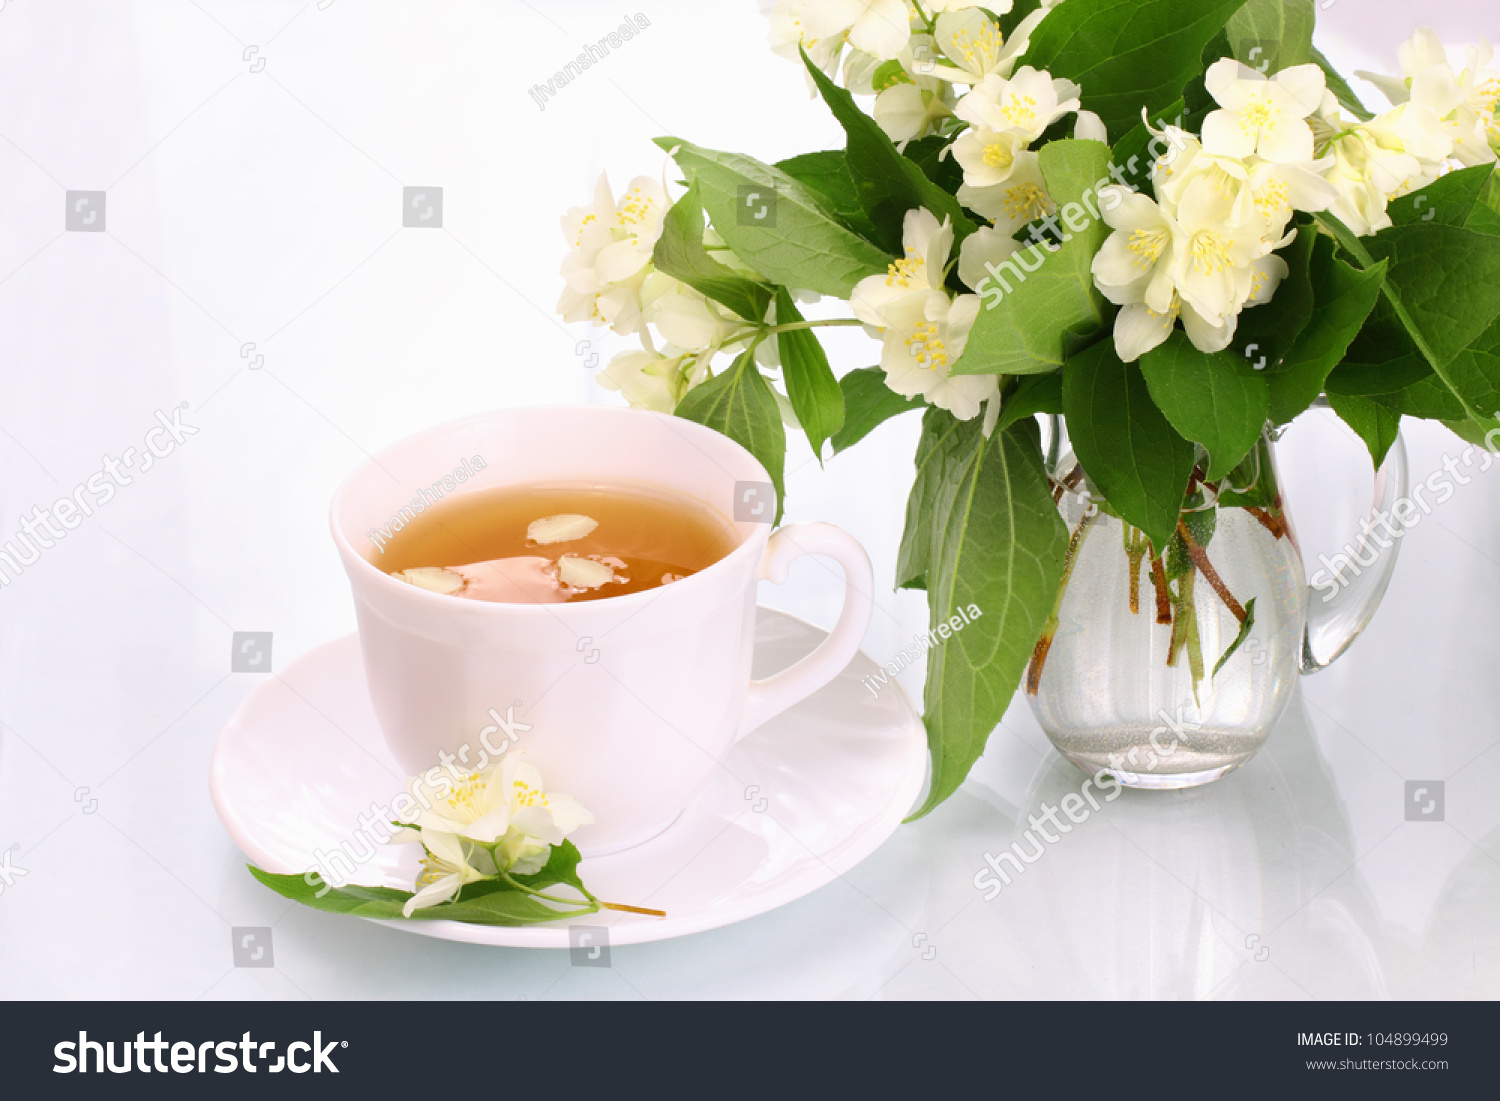 Jasmine Tea Flowers Stock Photo Royalty Free 104899499 Shutterstock